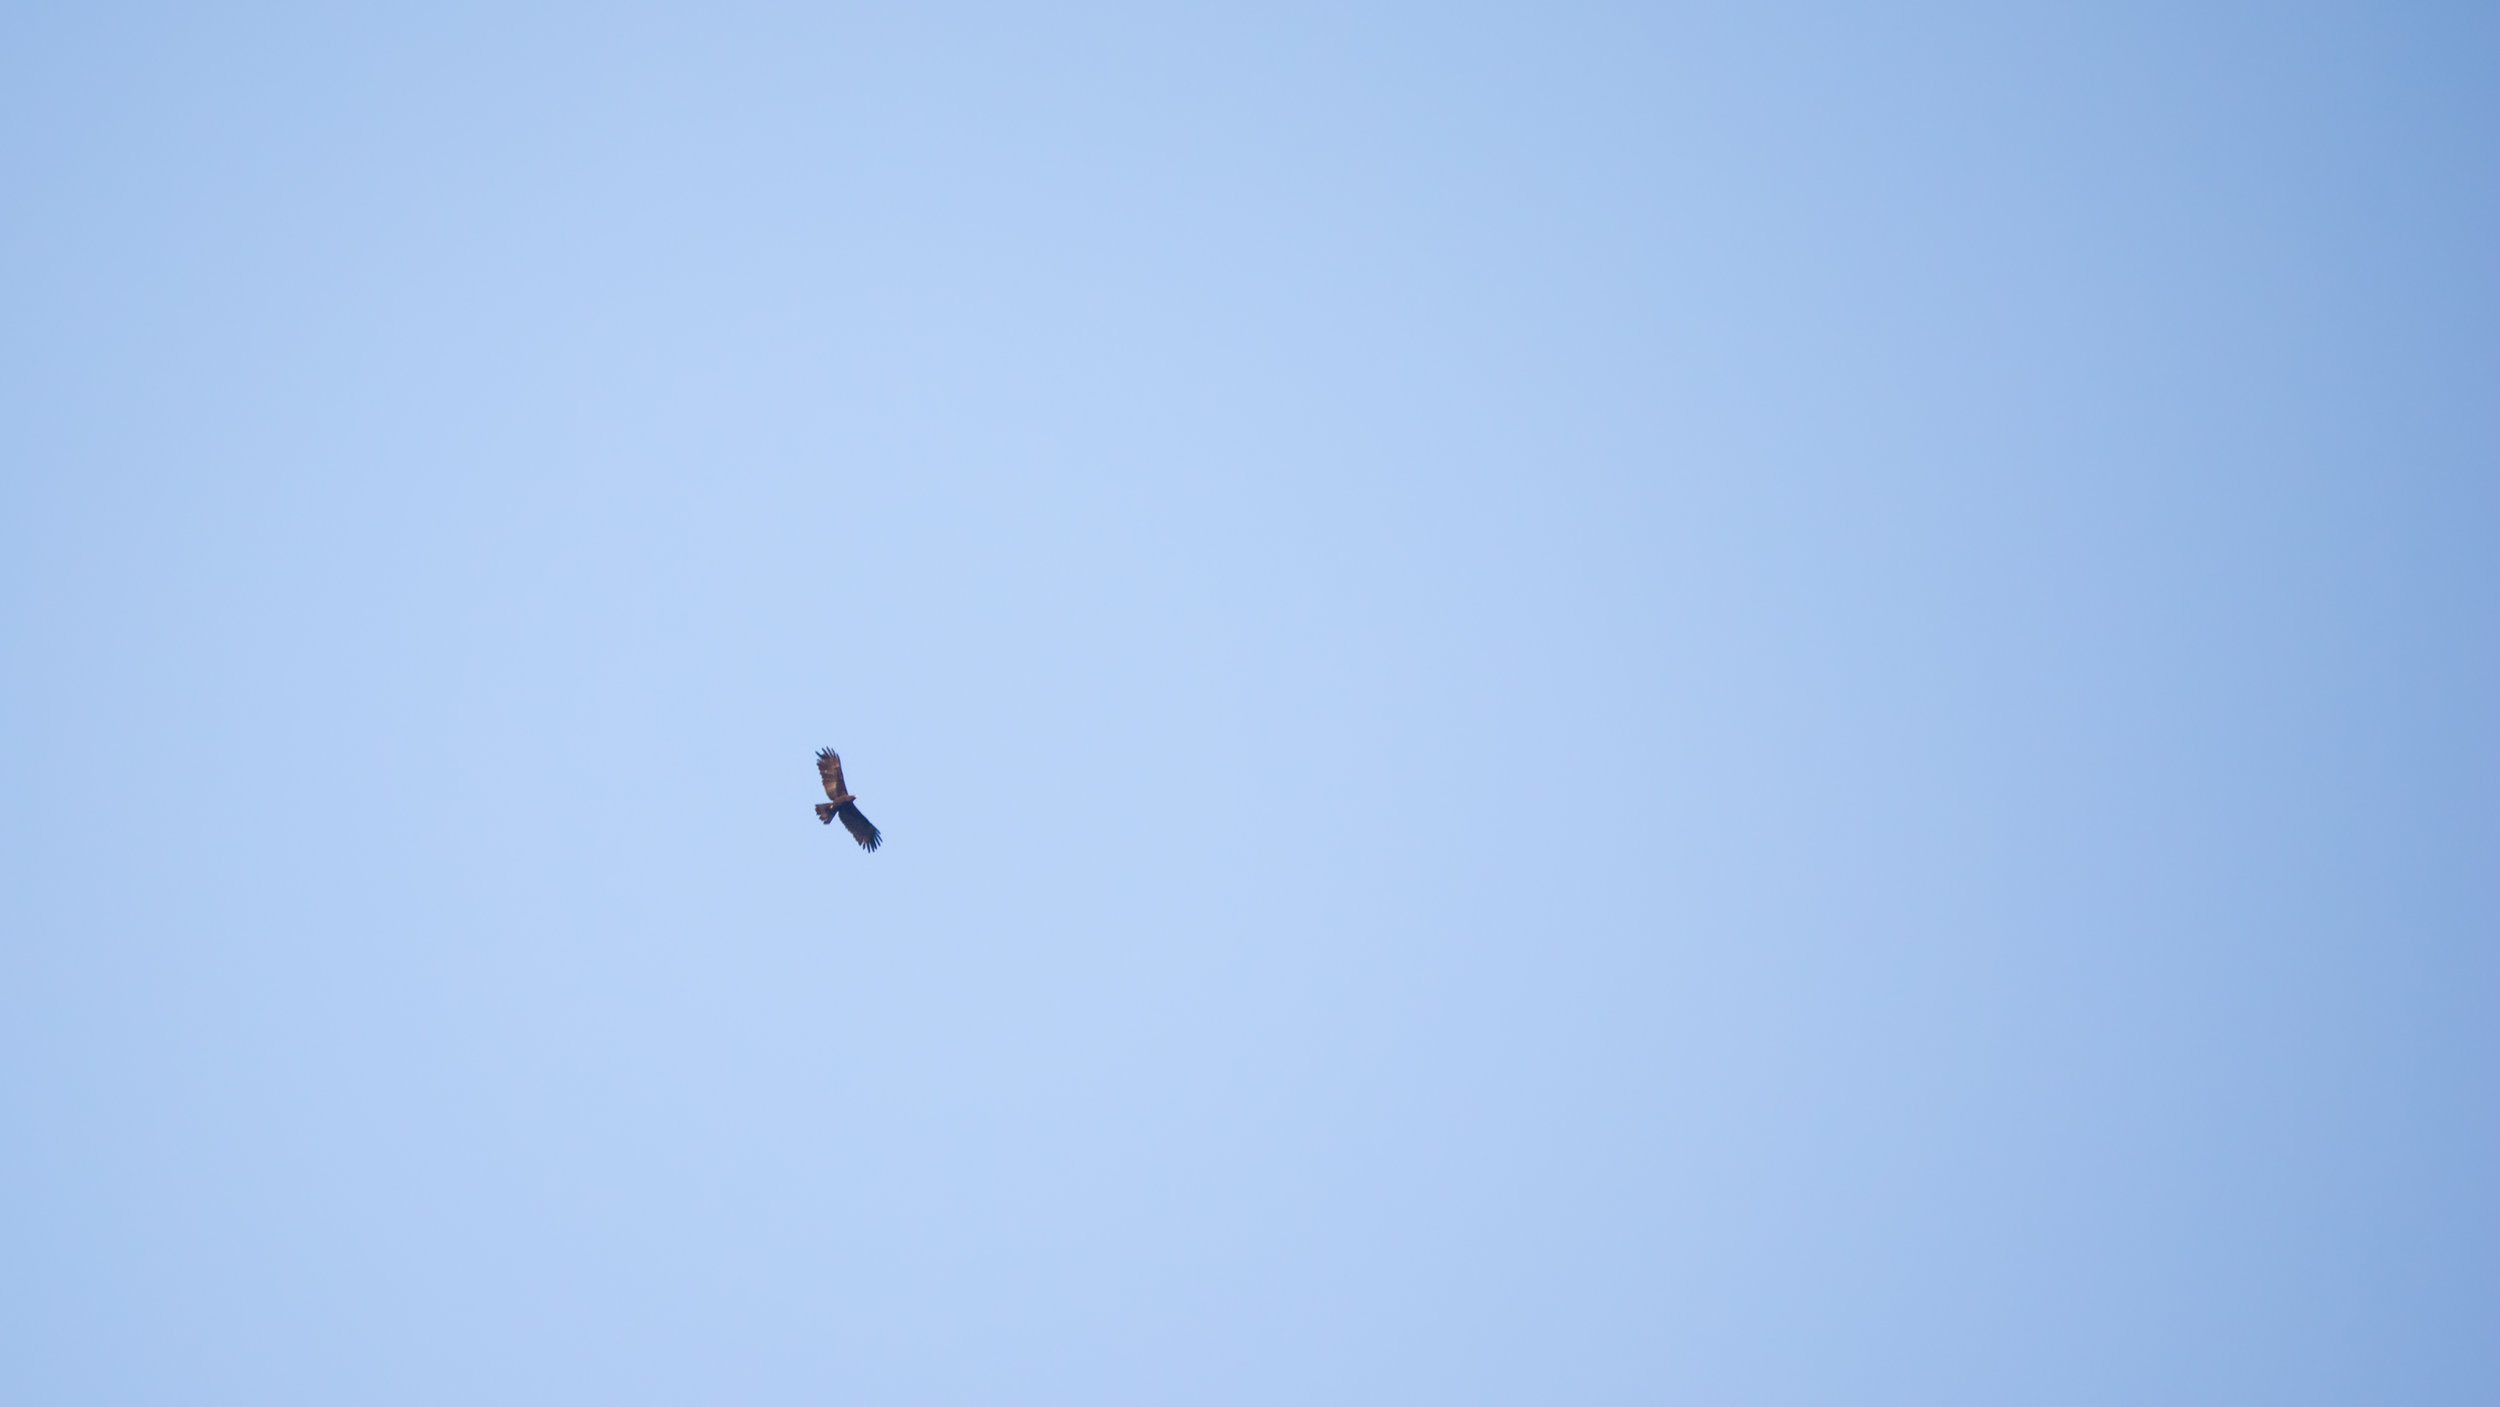 Black Eagle (Ictinaetus malayensis) in Munnar region, Kerala, India. February 2015. Not baited. Not called in.